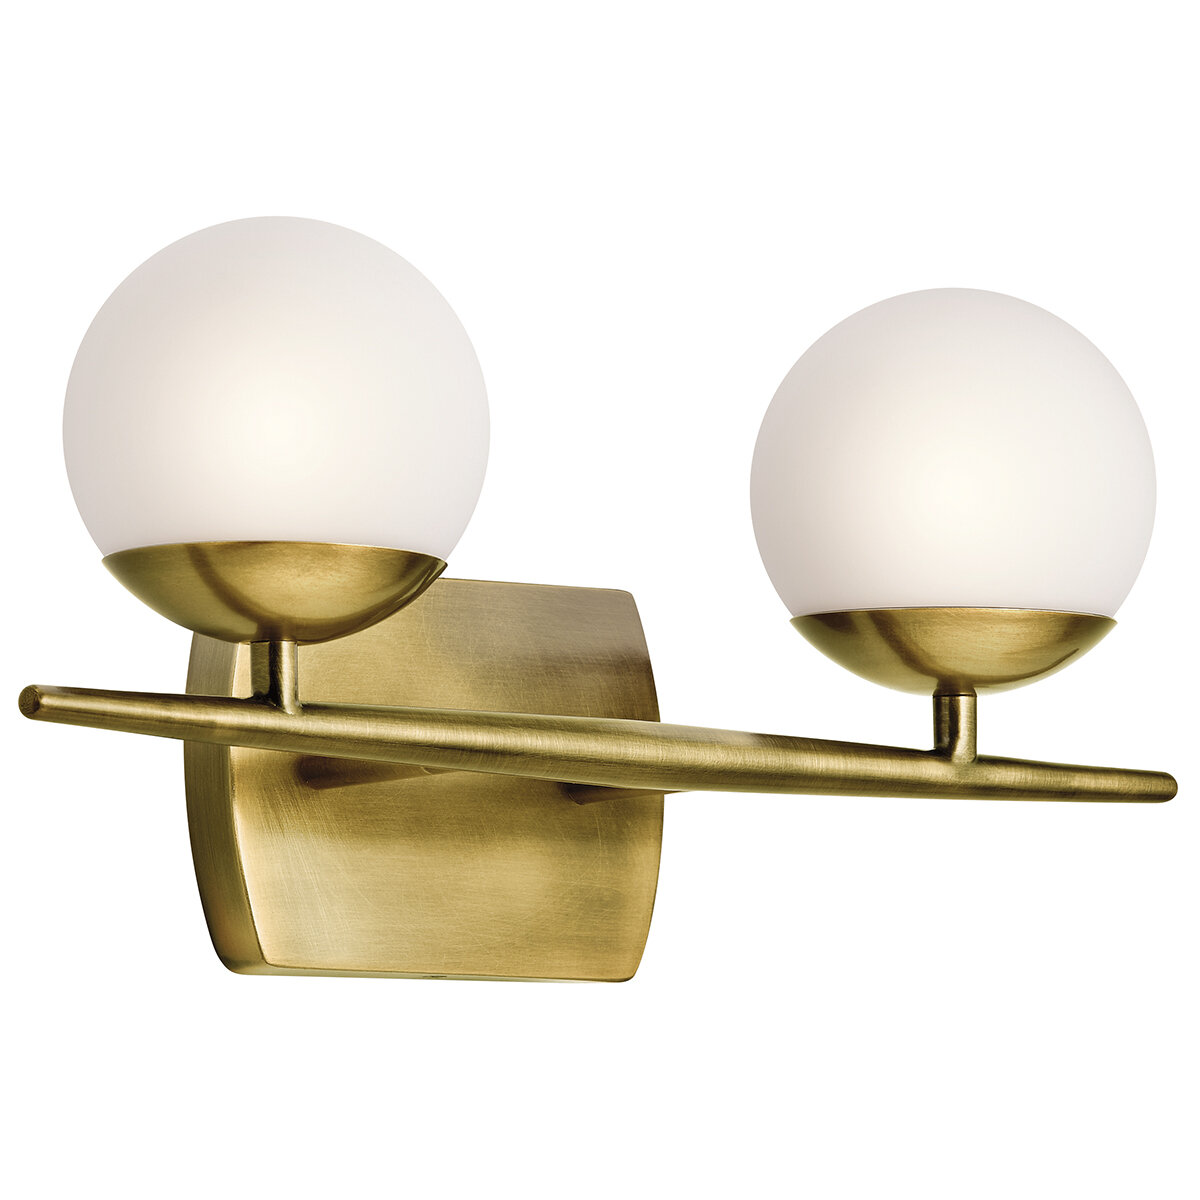 Sakamoto 2 Light Vanity Light Reviews Joss Main